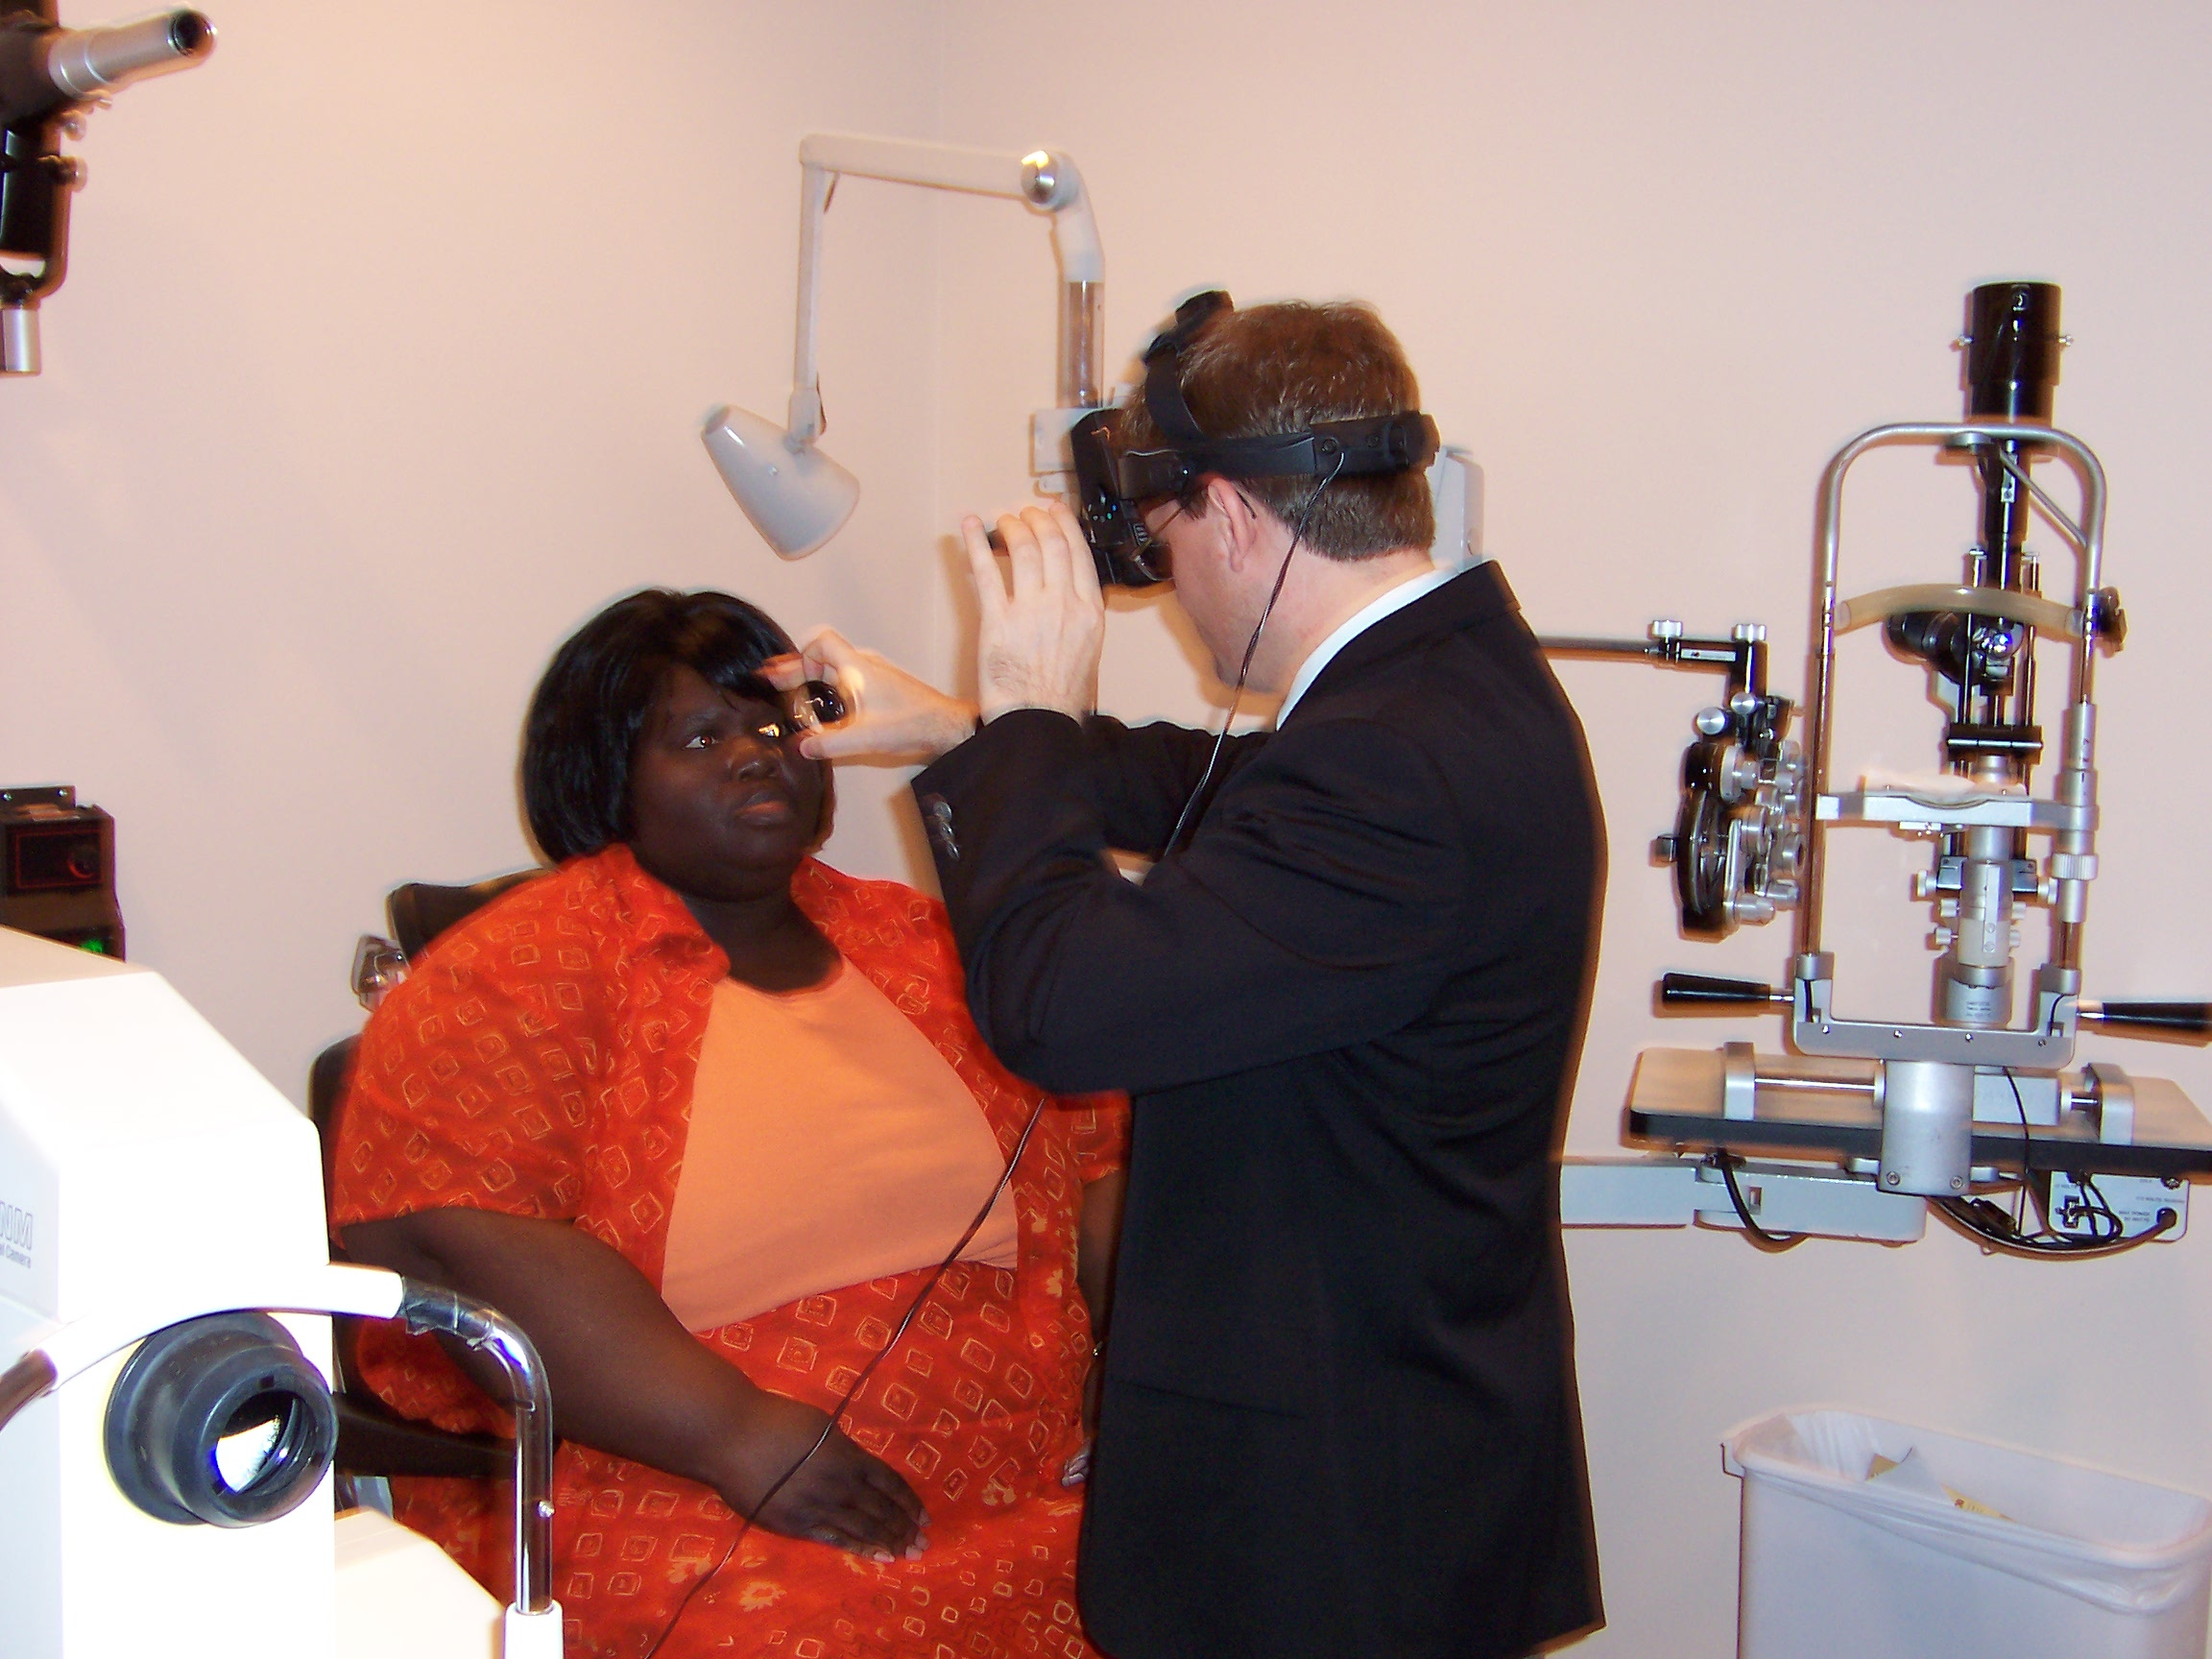 df706b00c01 Diabetic Eye Disease Can Cause Blindness! Get Evaluated By Dr. Spittler  Today